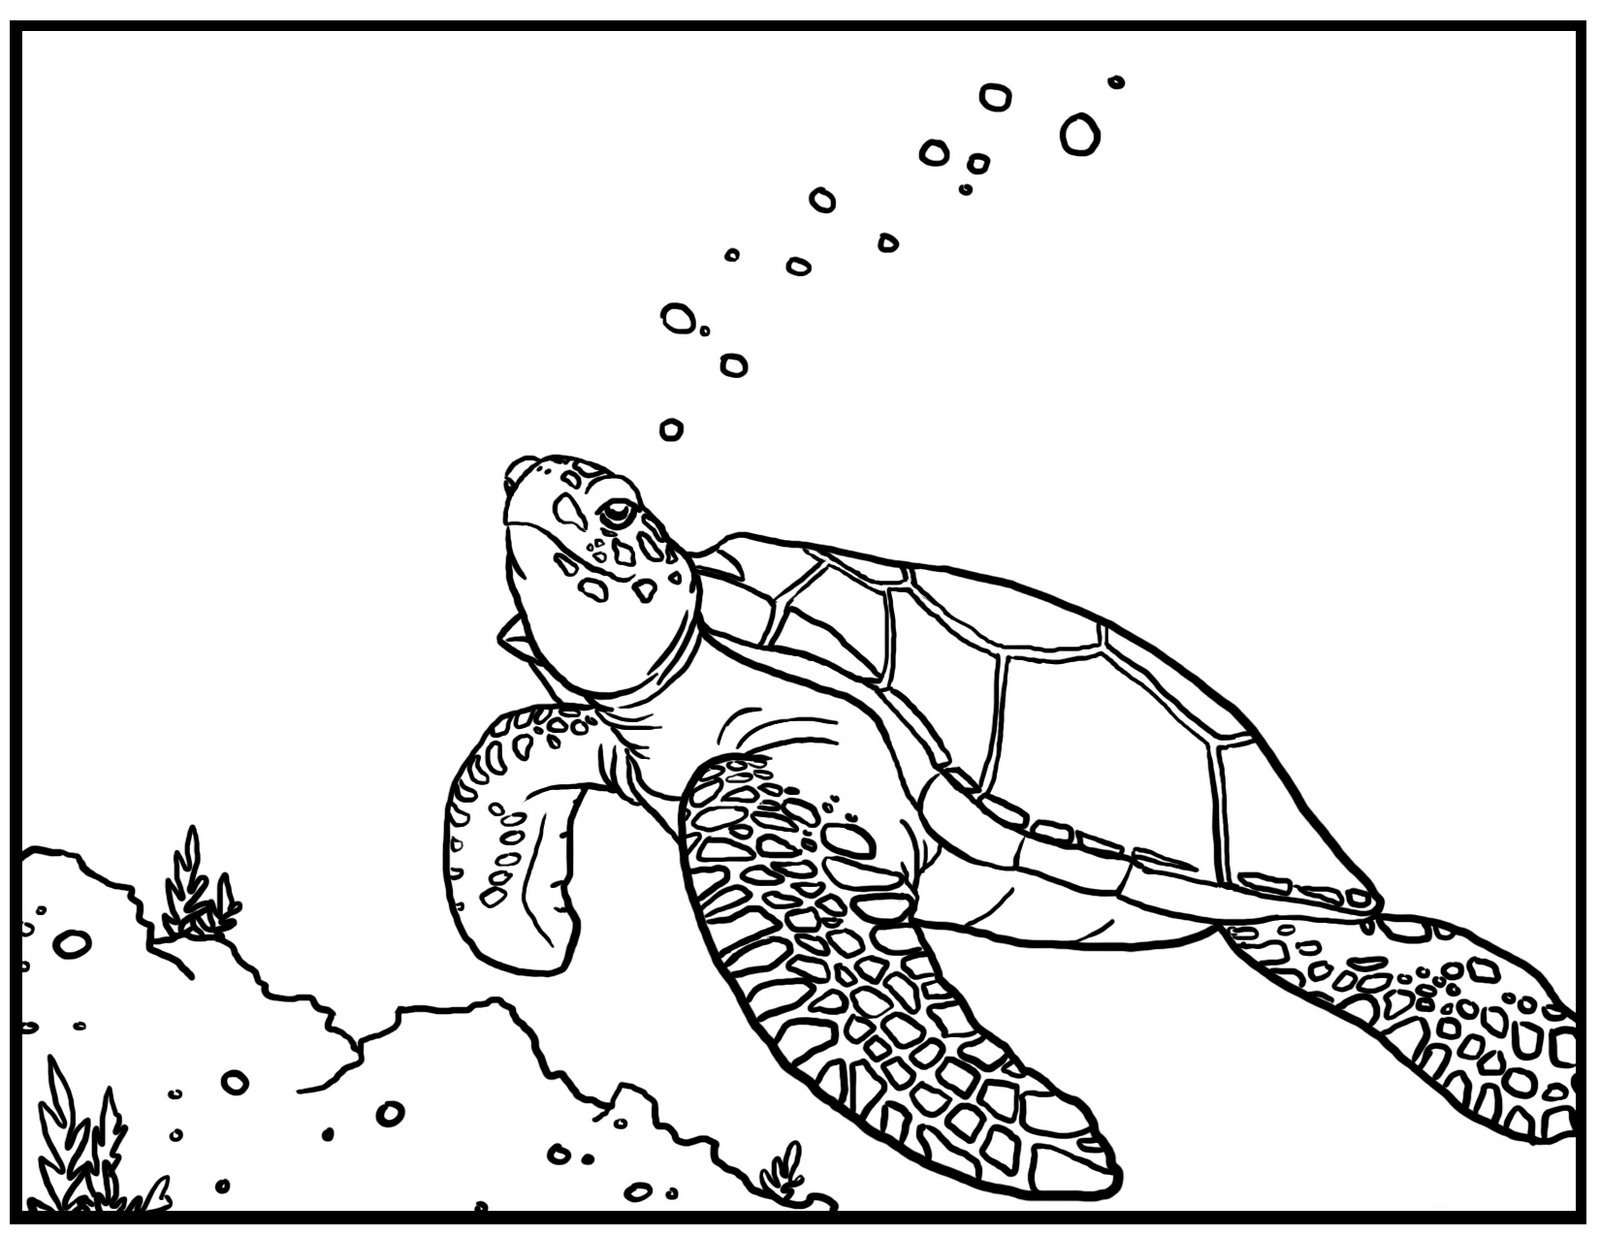 Cartoon Sea Turtle Coloring Pages at GetDrawings.com | Free ...